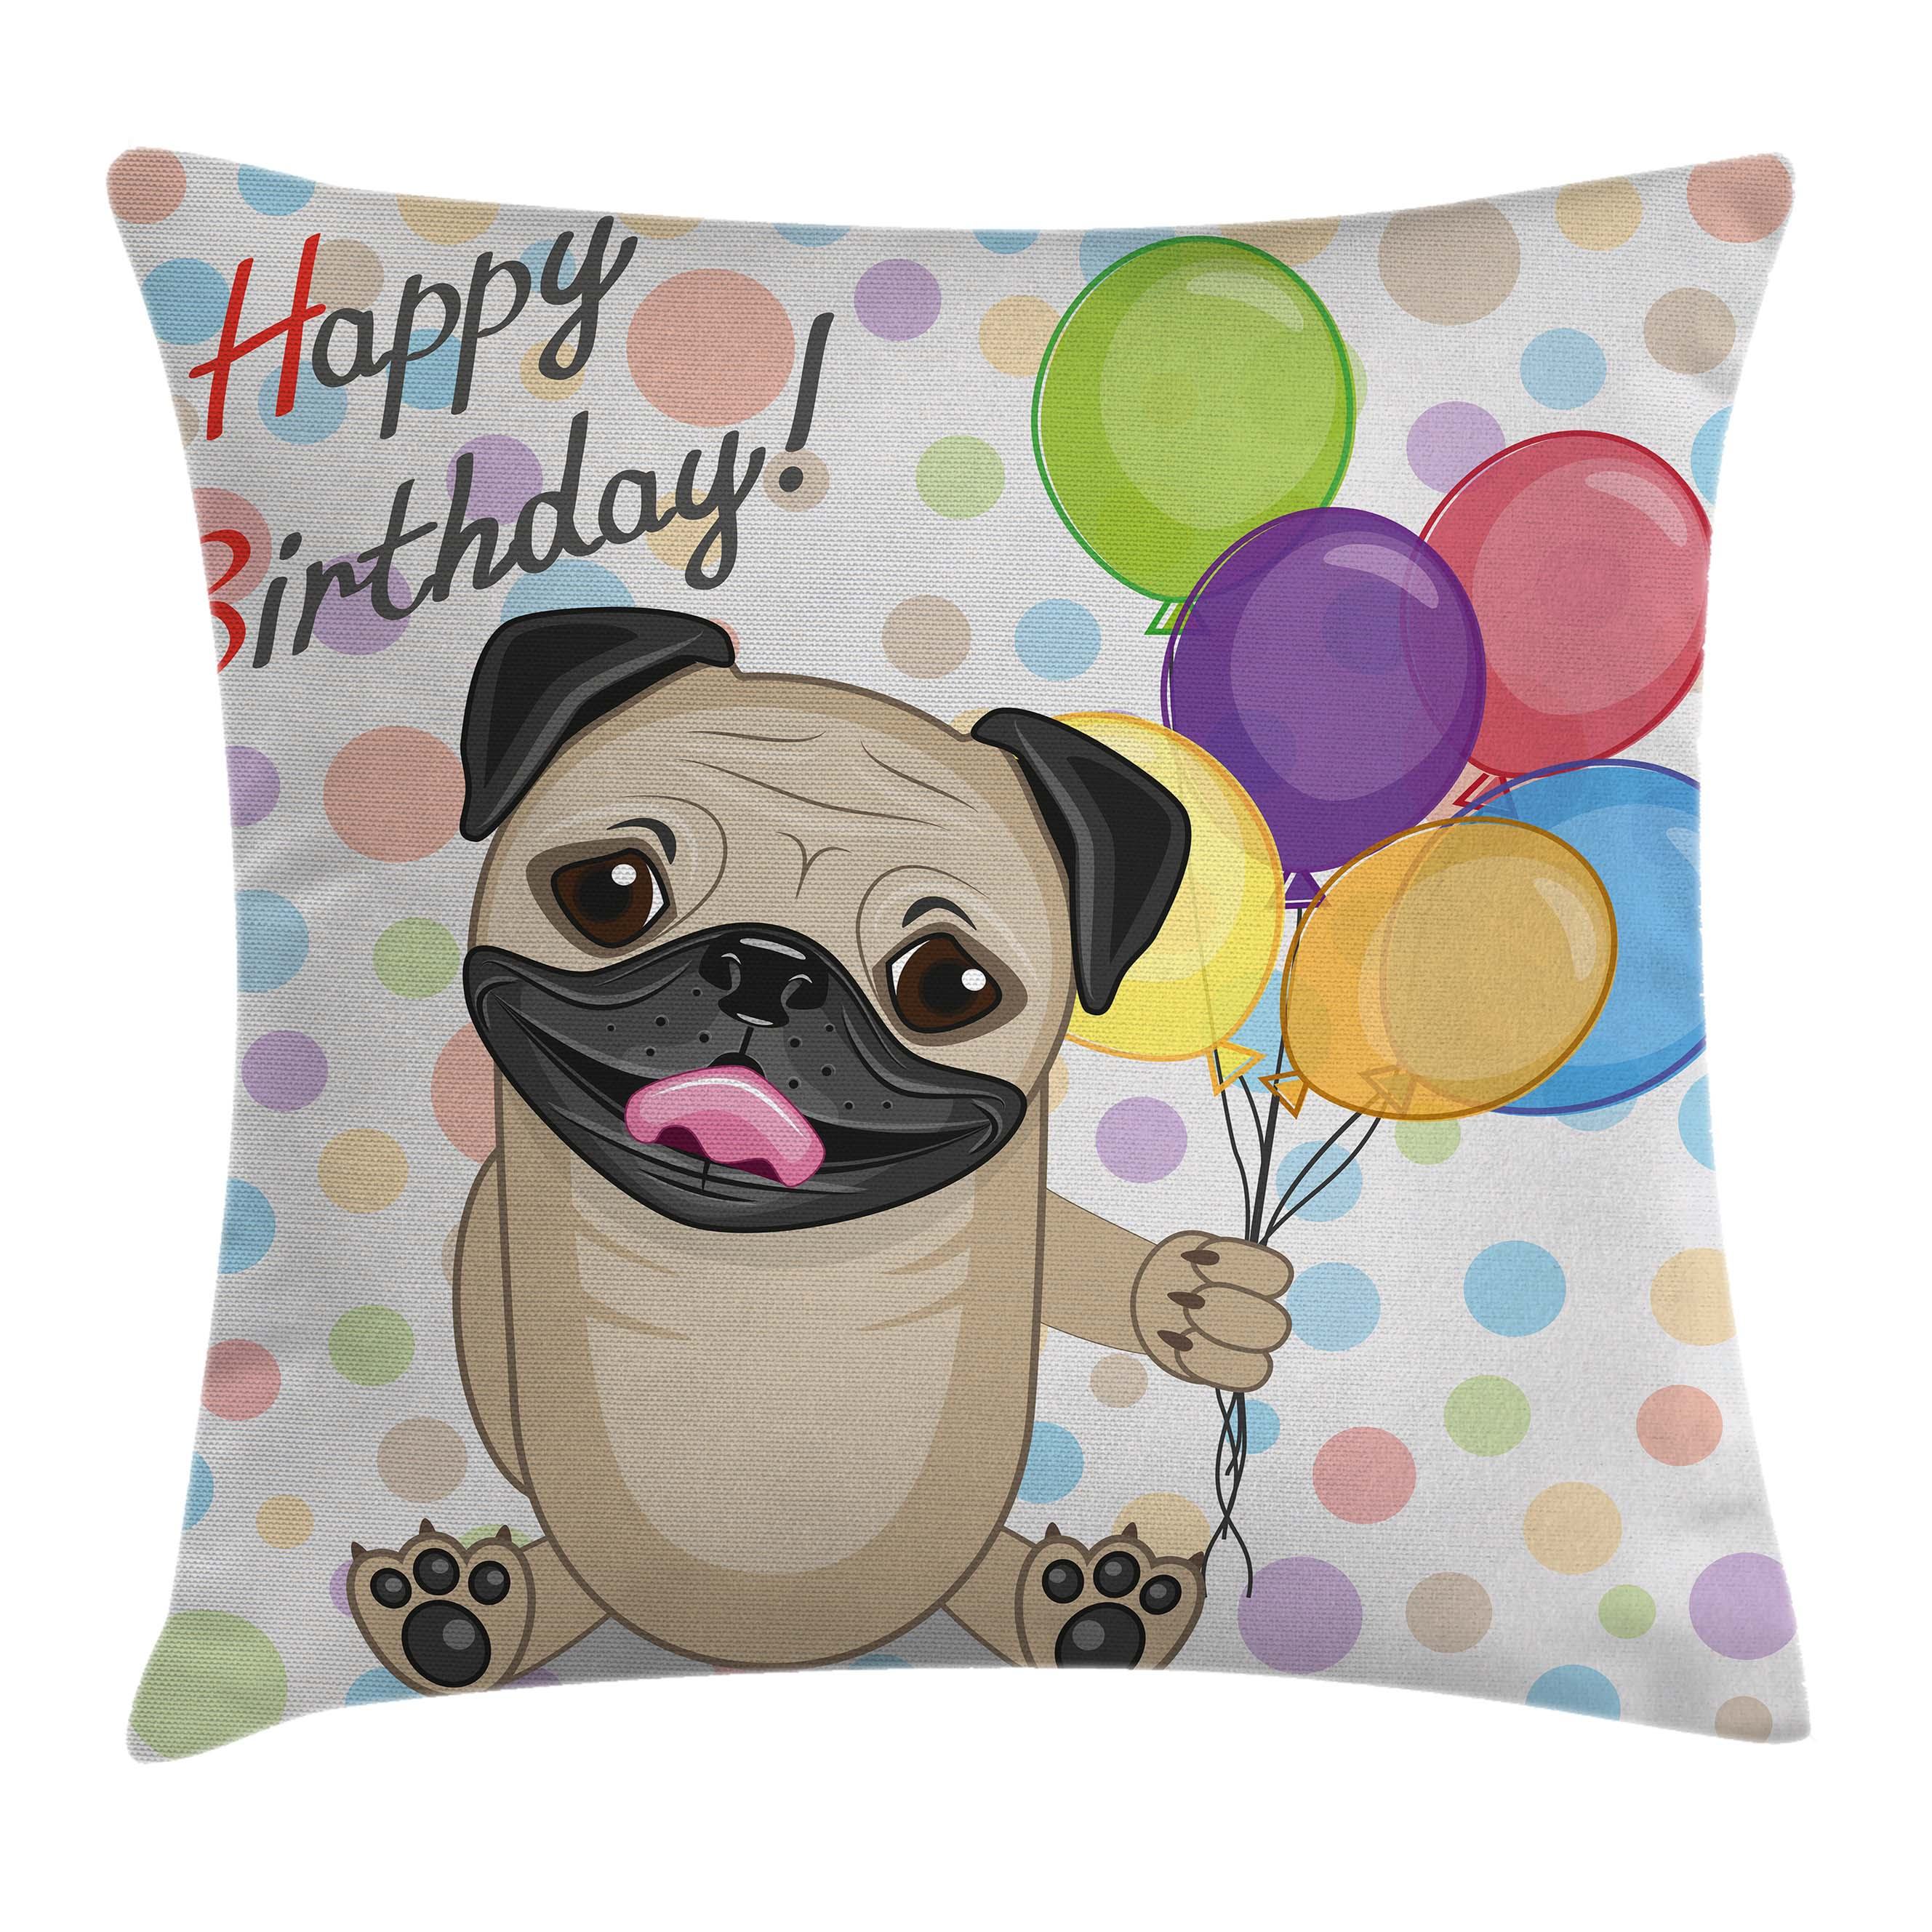 Birthday Decorations for Kids Throw Pillow Cushion Cover, Animal Cute Dog Smiling Pug with Party Balloons Greeting Card, Decorative Square Accent Pillow Case, 16 X 16 Inches, Multicolor, by Ambesonne